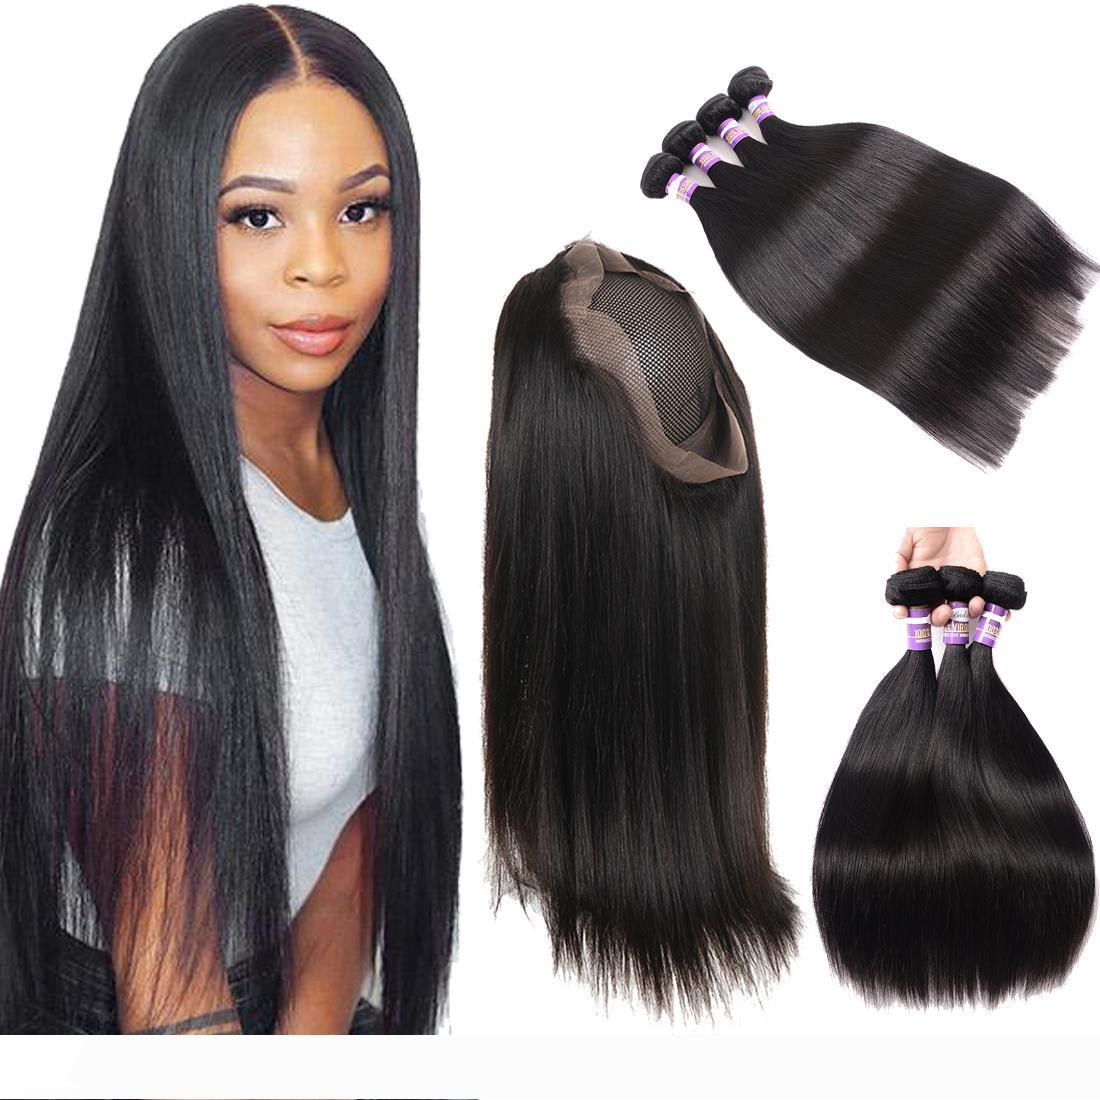 9A Brazilian Straight Human Hair Body Wave Hair Bundles With 360 Lace Frontal Closure 3 Bundles With 360 Lace Closure Human Hair Extensions